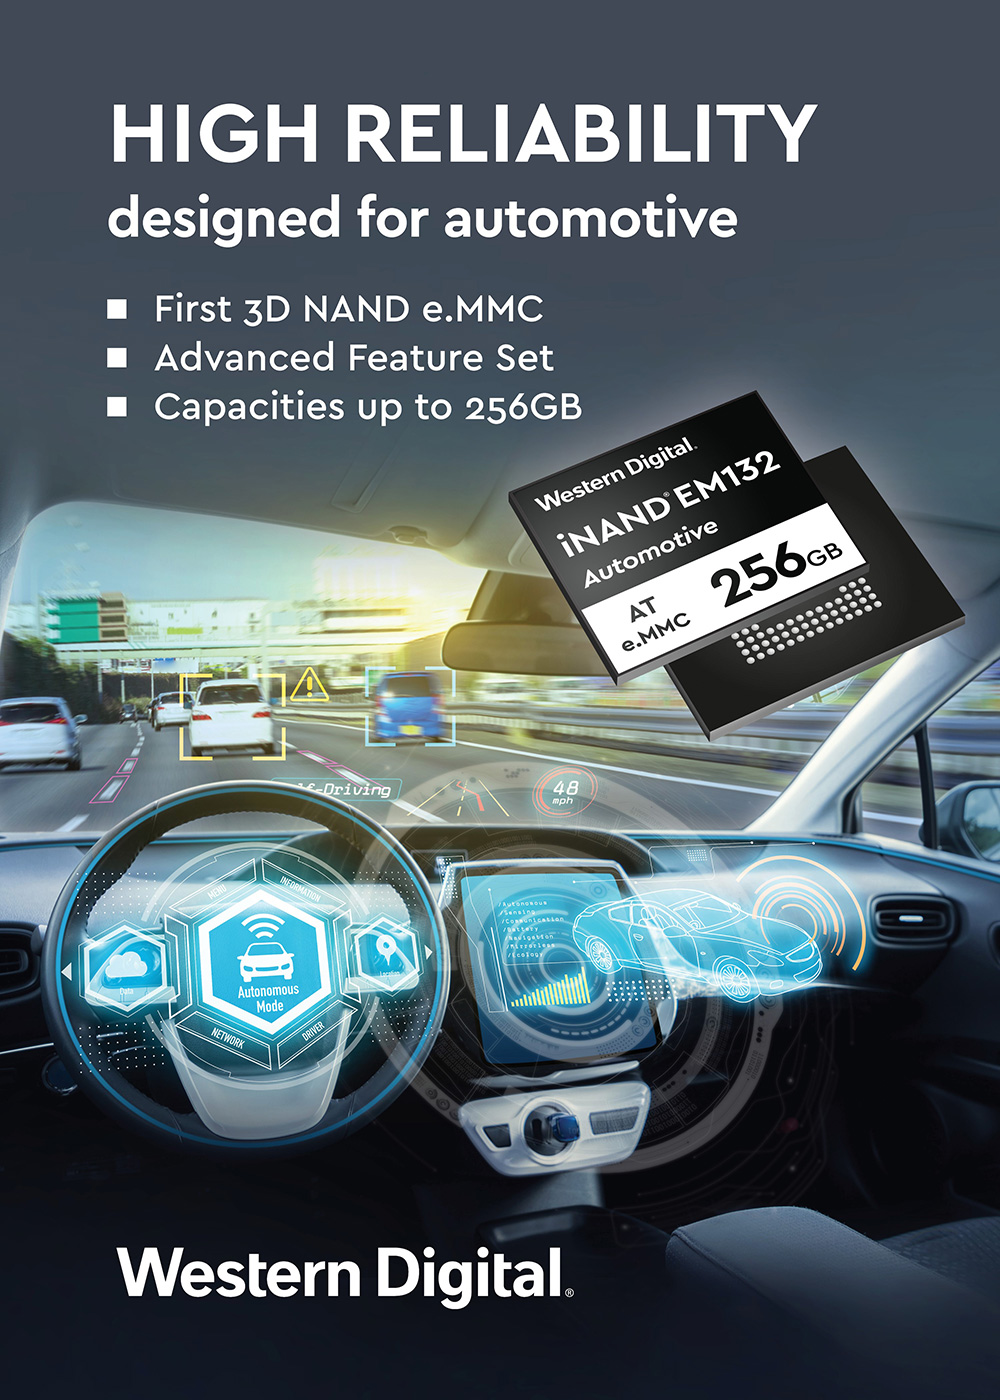 Western Digital iNAND AT EM132 EFD designed for automotive is the first 3D NAND e.MMC and includes advanced feature sets and capacities up to 256GB